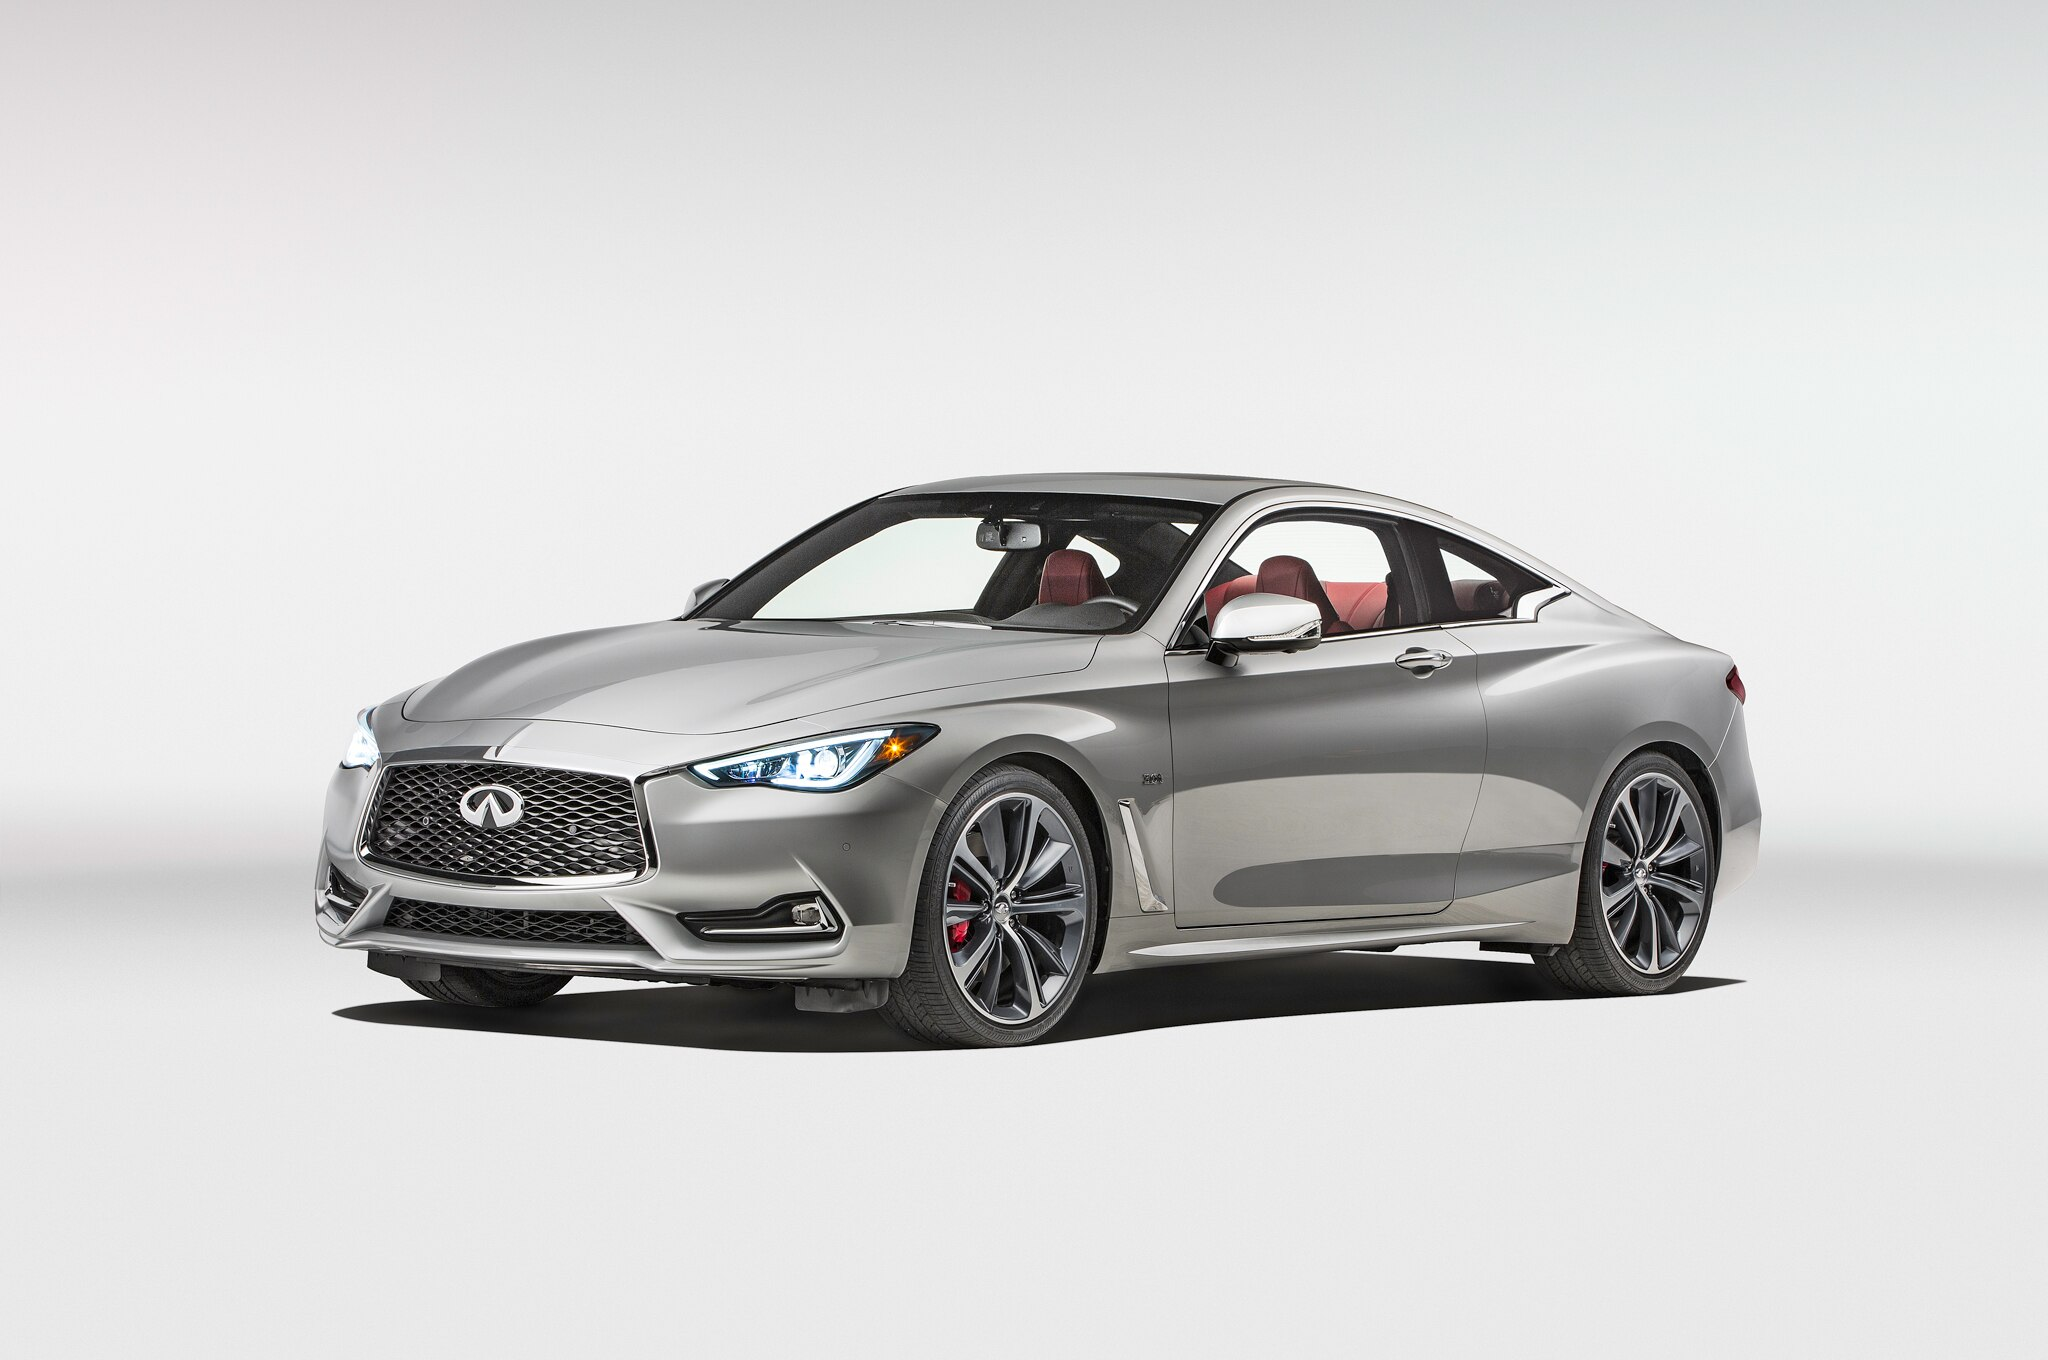 profile to m the rear l coupe g from concept full evolution infiniti now vehicles ximg smart discontinued infinity gtoq